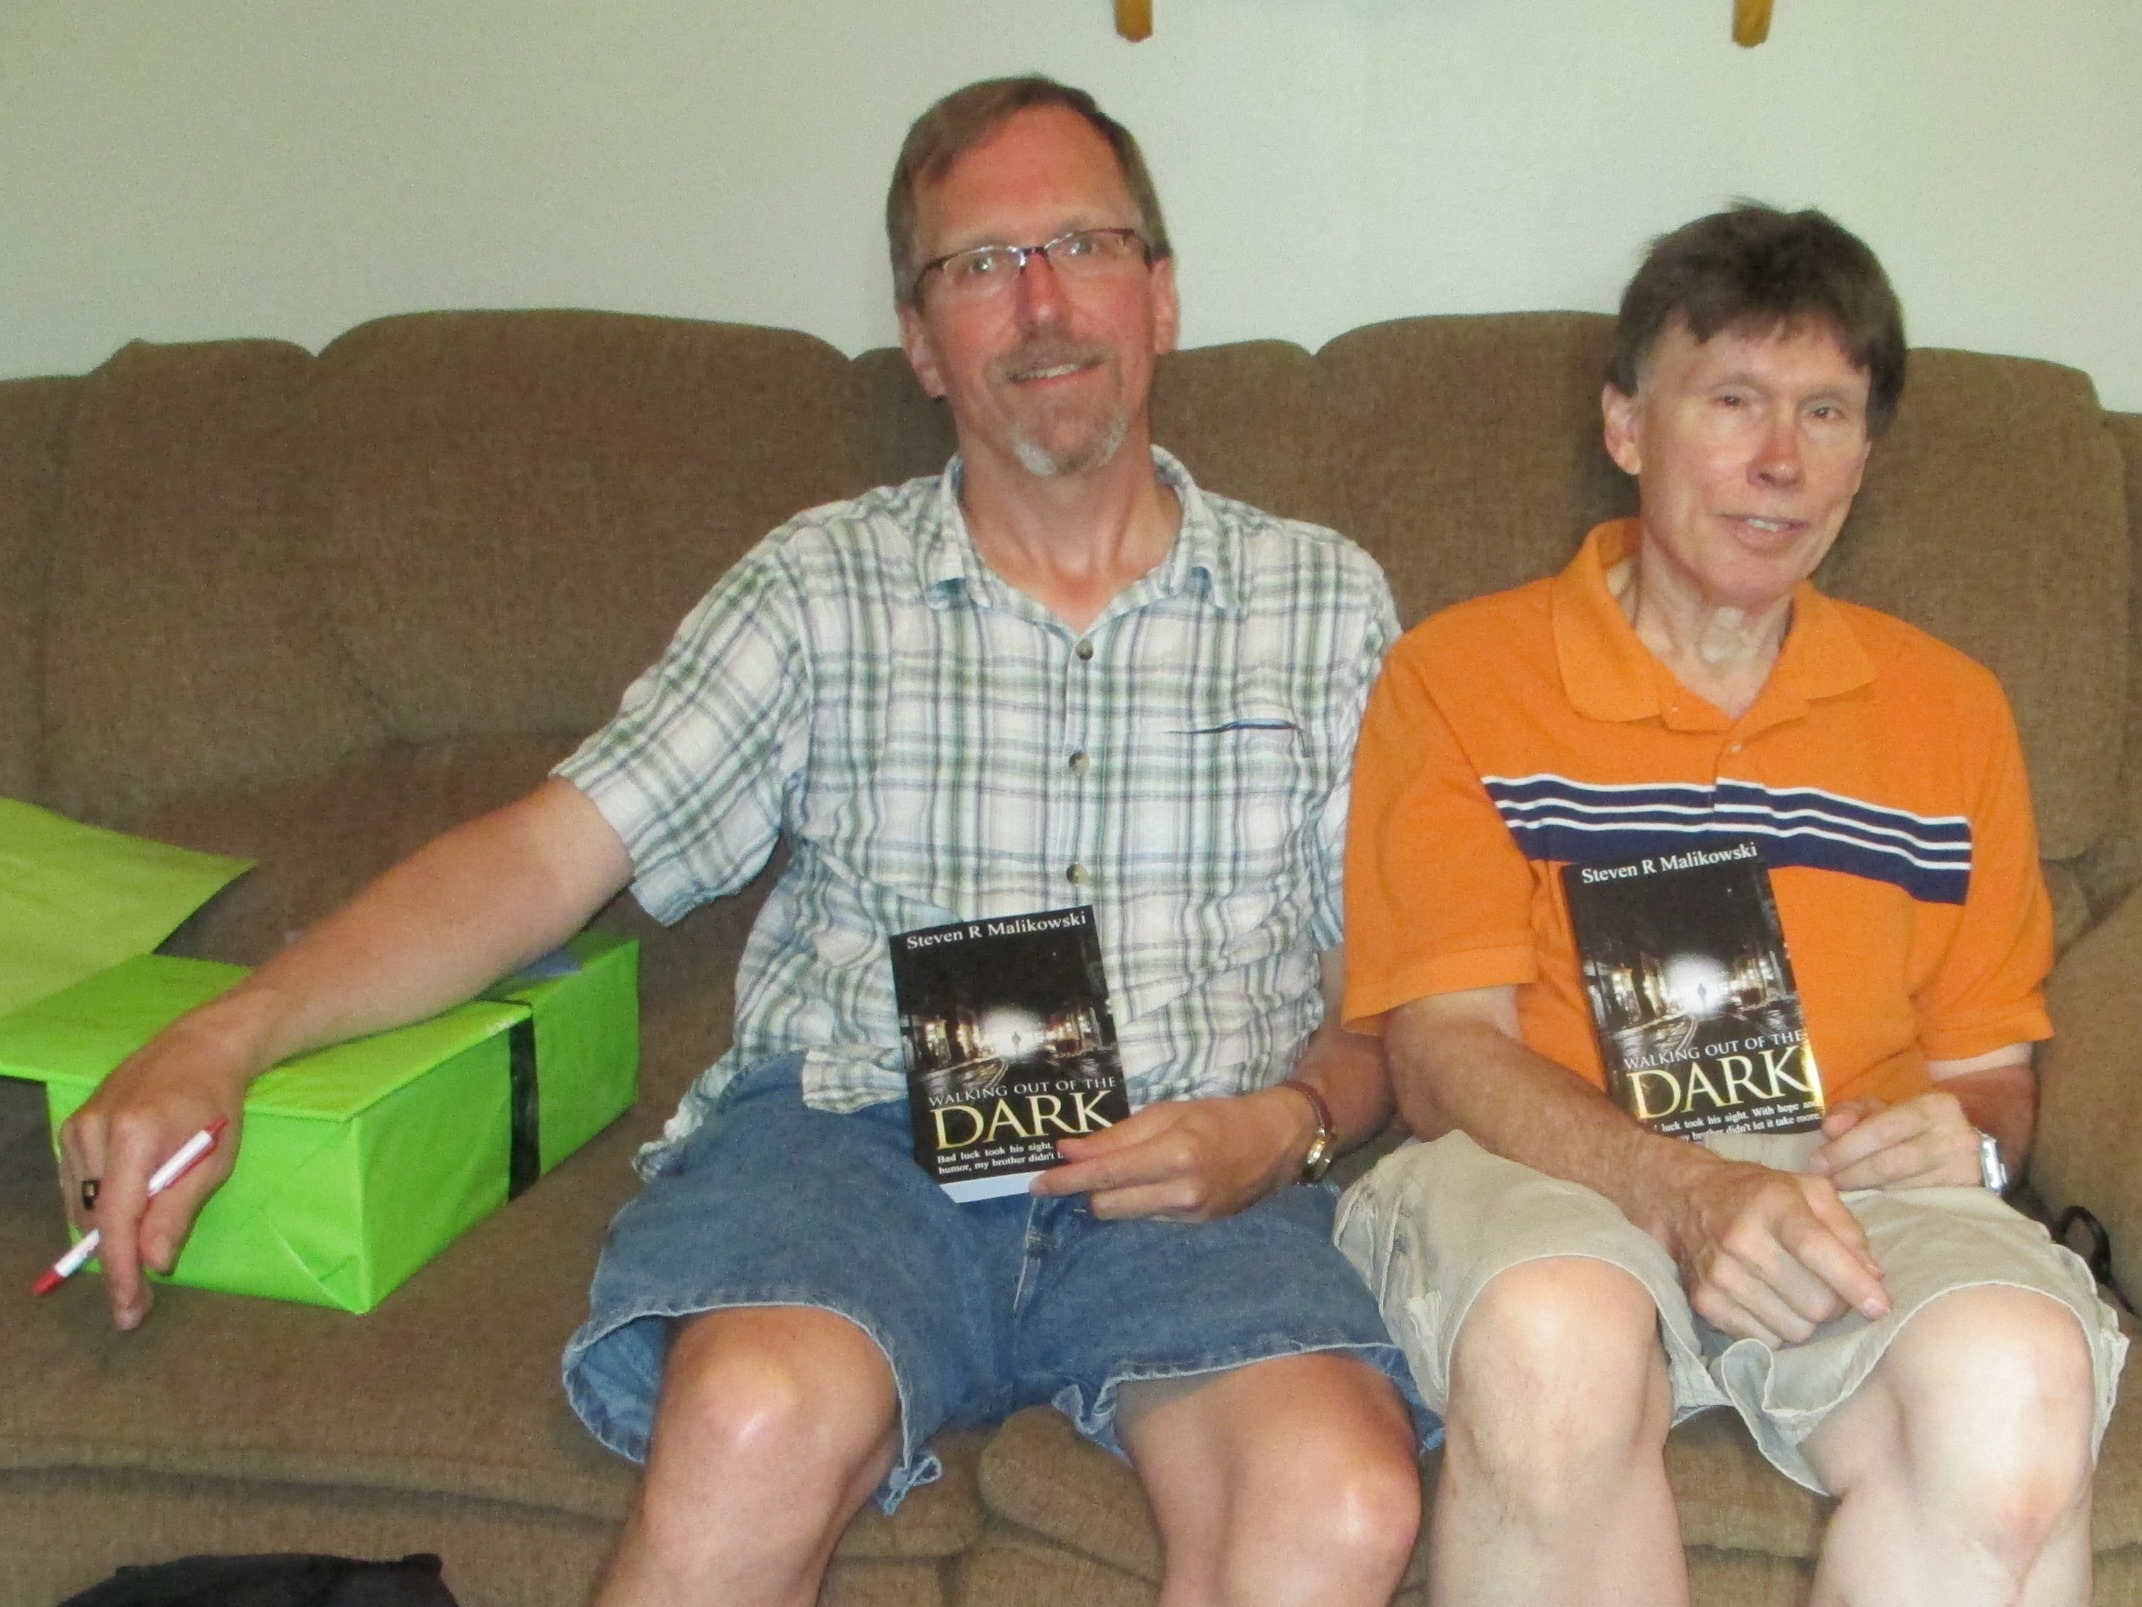 Me, Mike, & the Book